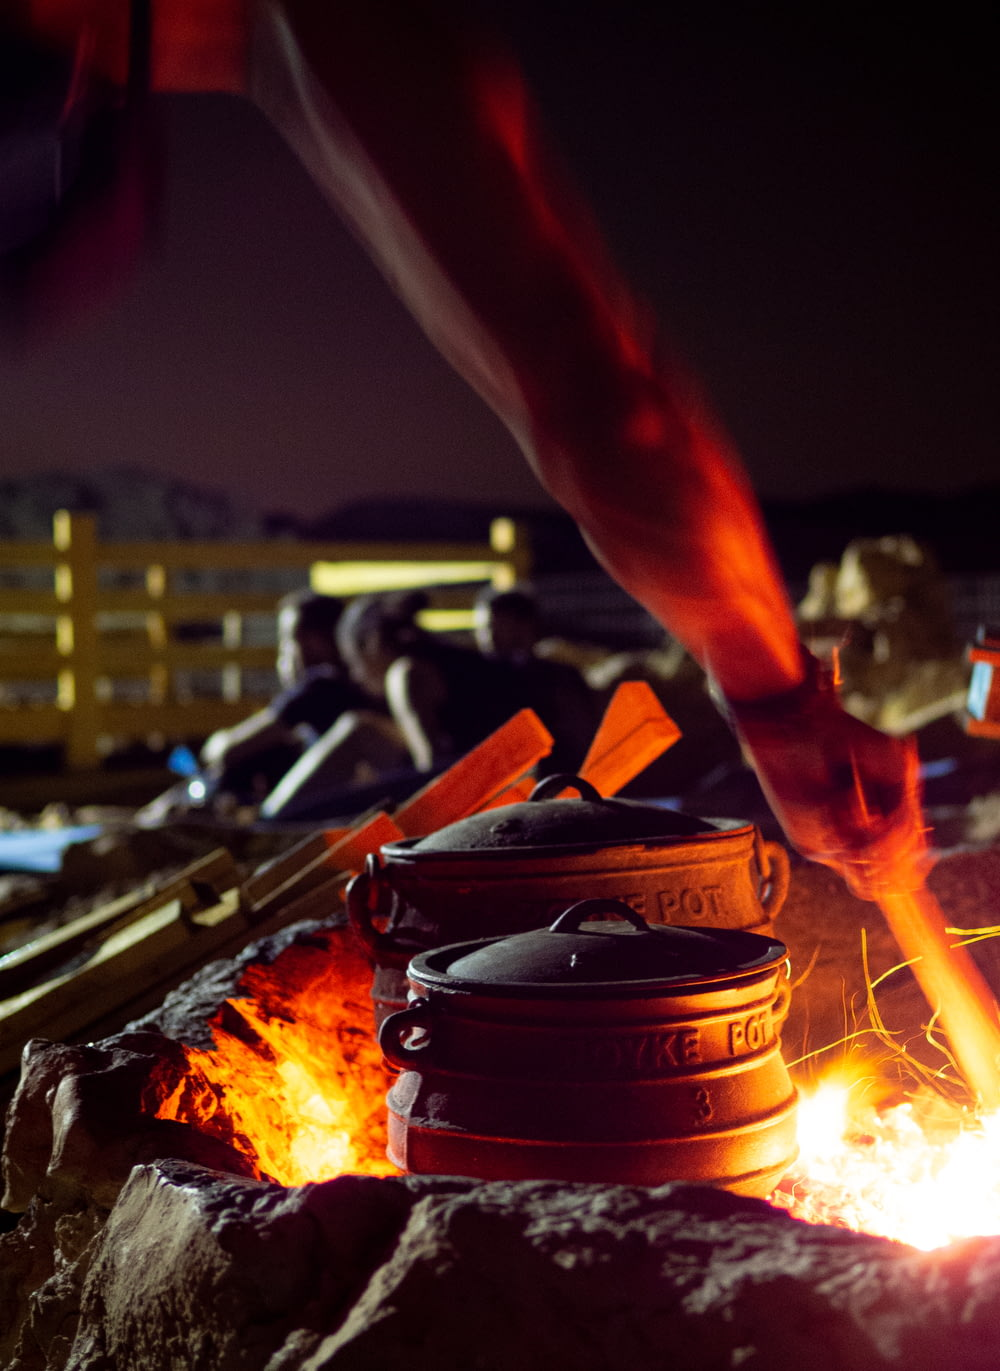 person holding black round container with fire during night time